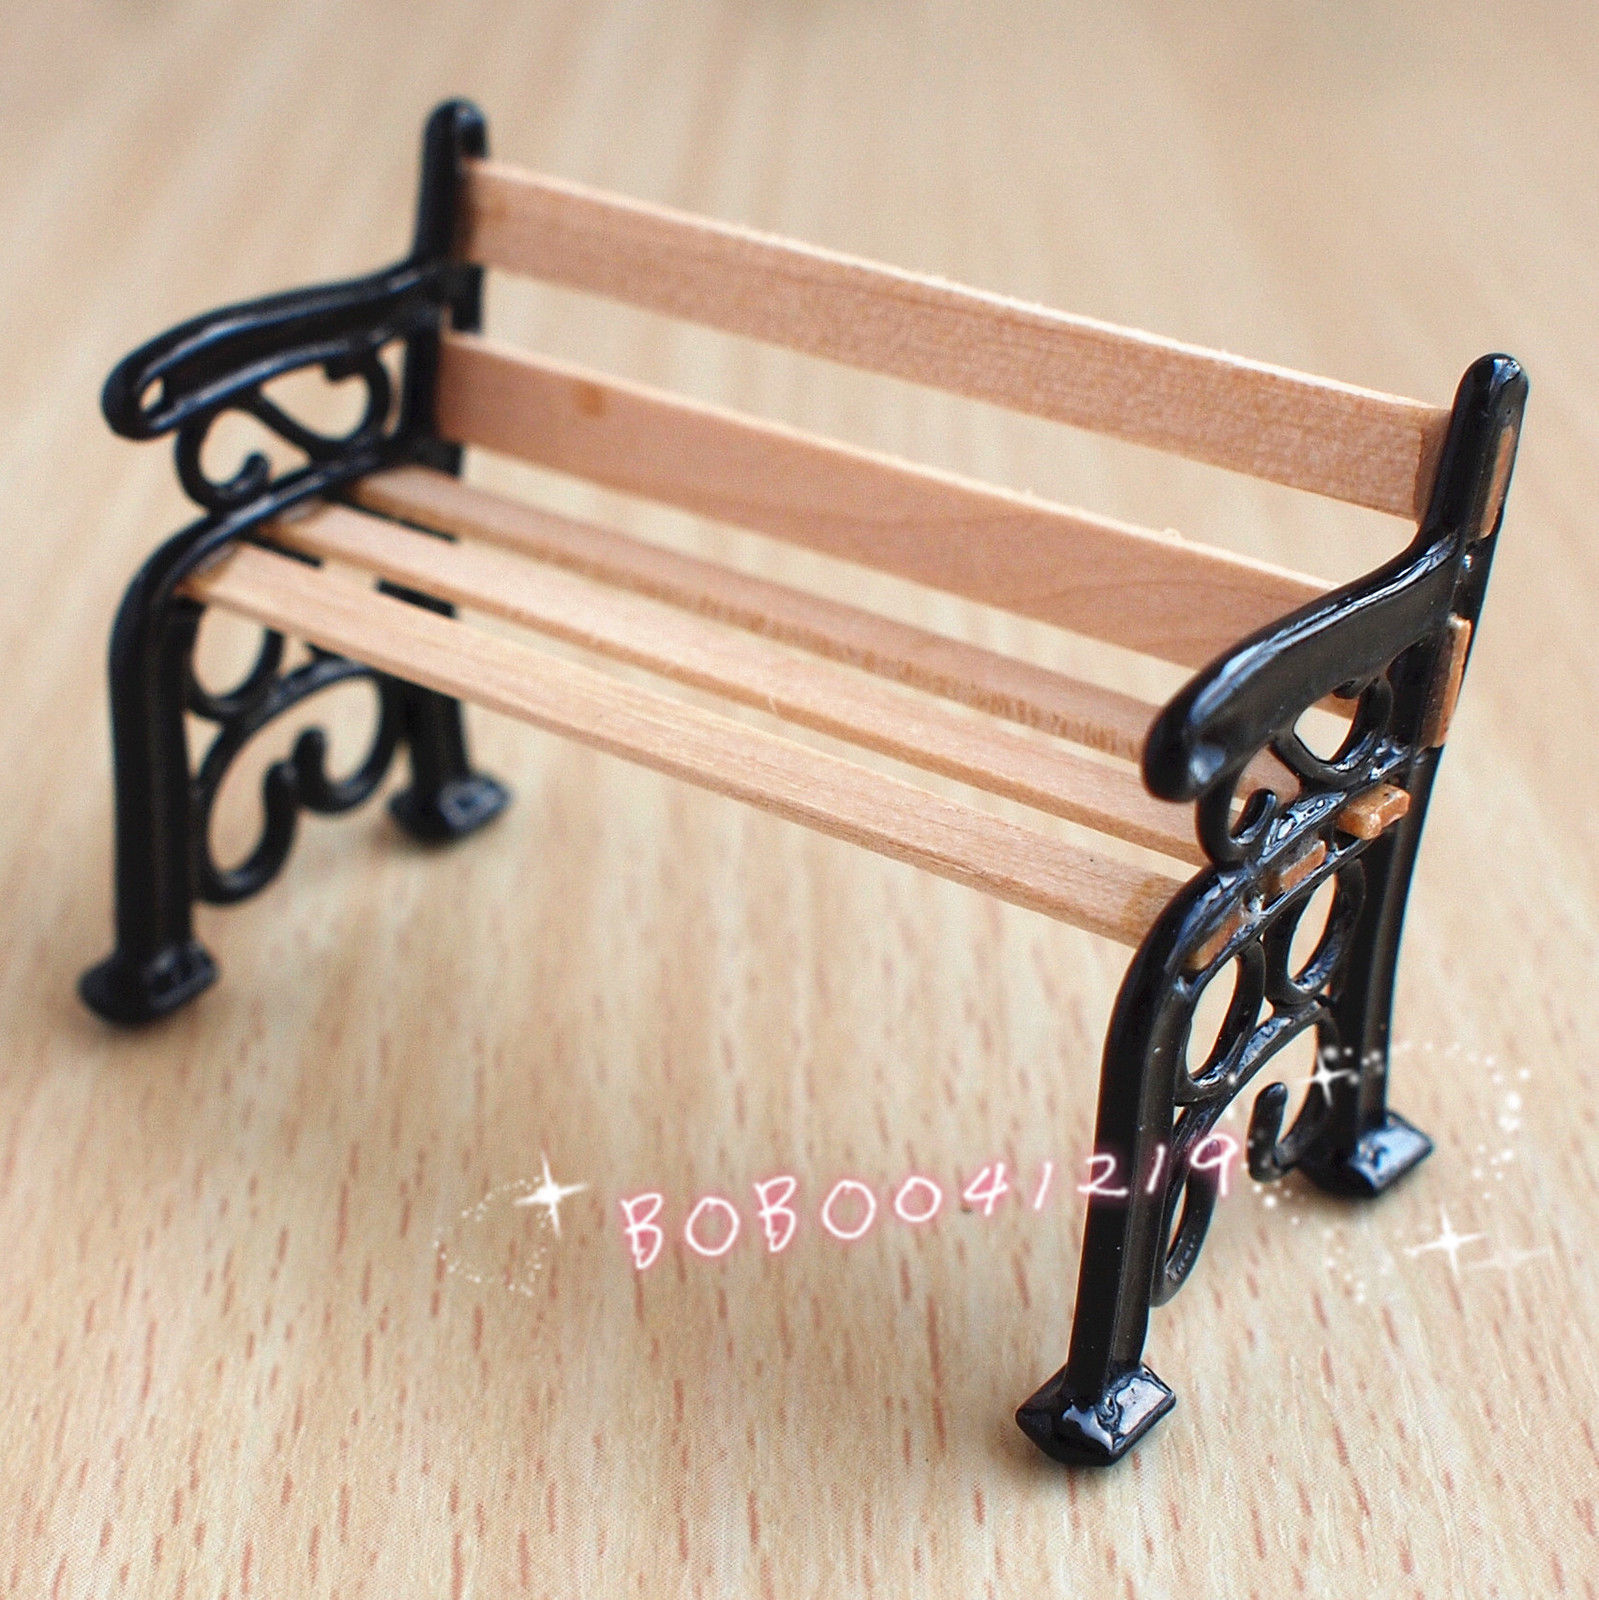 Dollhouse Miniature 1:24 Super Mini Wood U0026 Metal Small Garden Bench Length  5cm J8 In Doll Houses From Toys U0026 Hobbies On Aliexpress.com | Alibaba Group